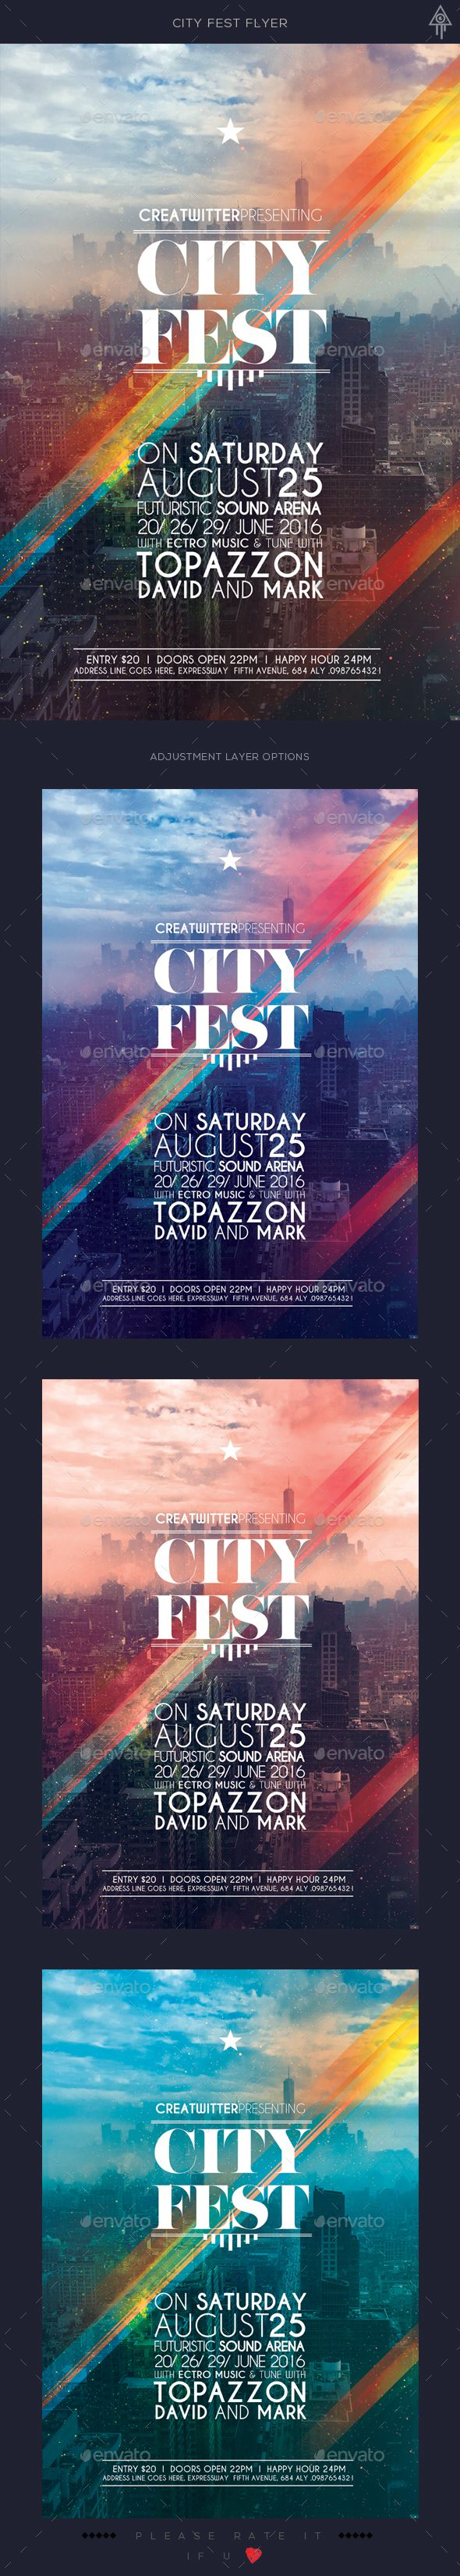 Pin by best Graphic Design on Flyer Templates | Graphic design